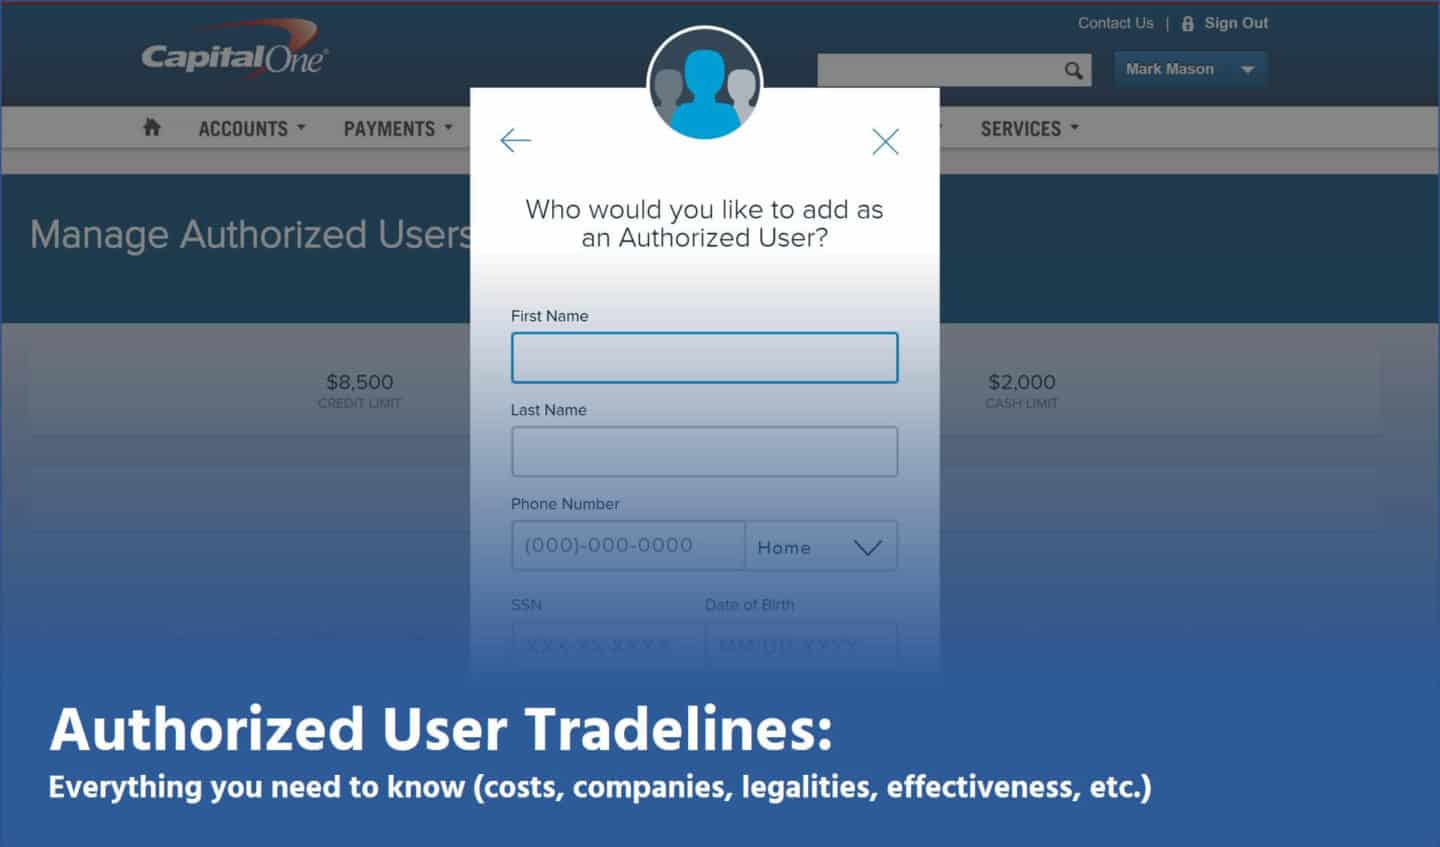 authorized user tradelines information